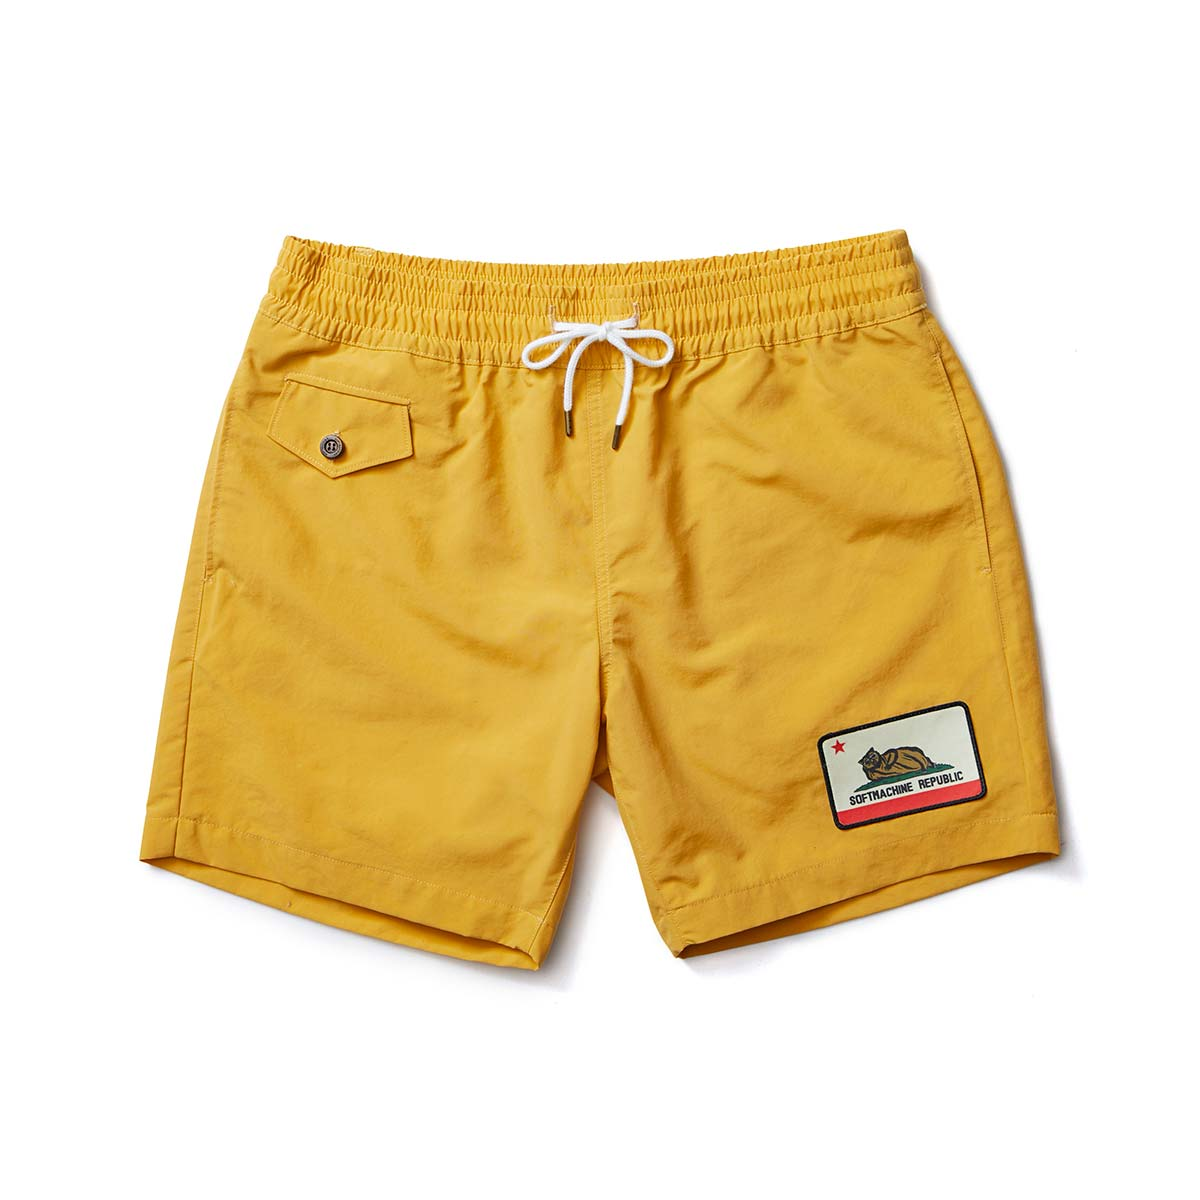 CHILLIN' BOARD SHORTS